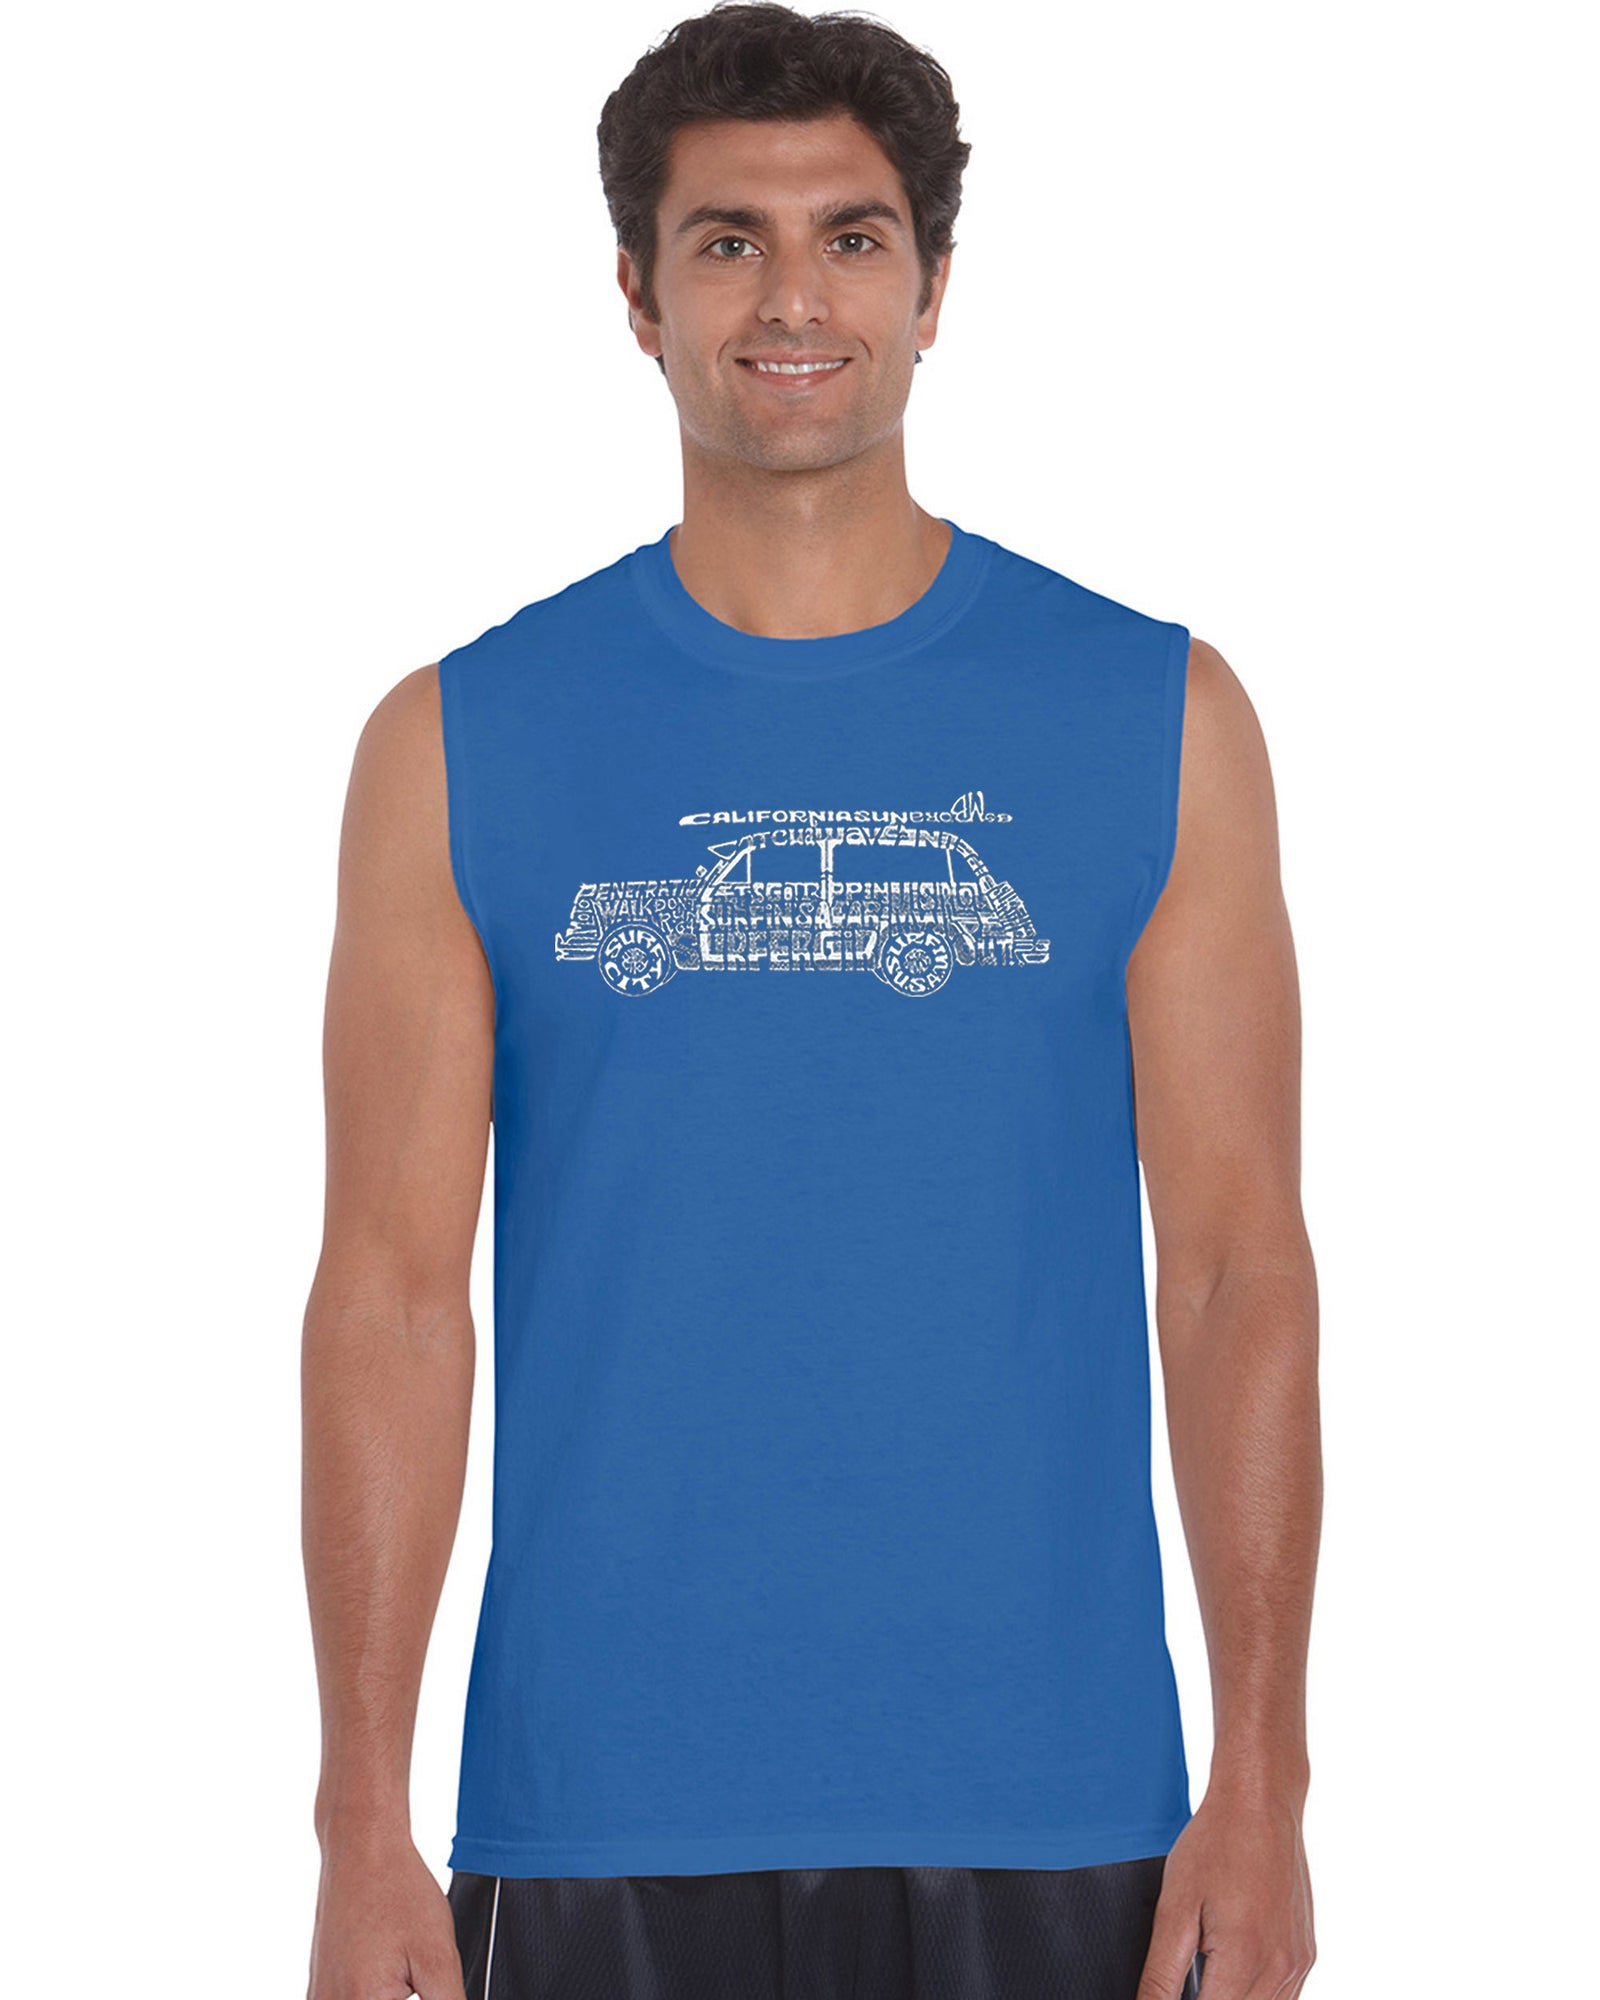 Men's Sleeveless T-shirt - Woody - Classic Surf Songs